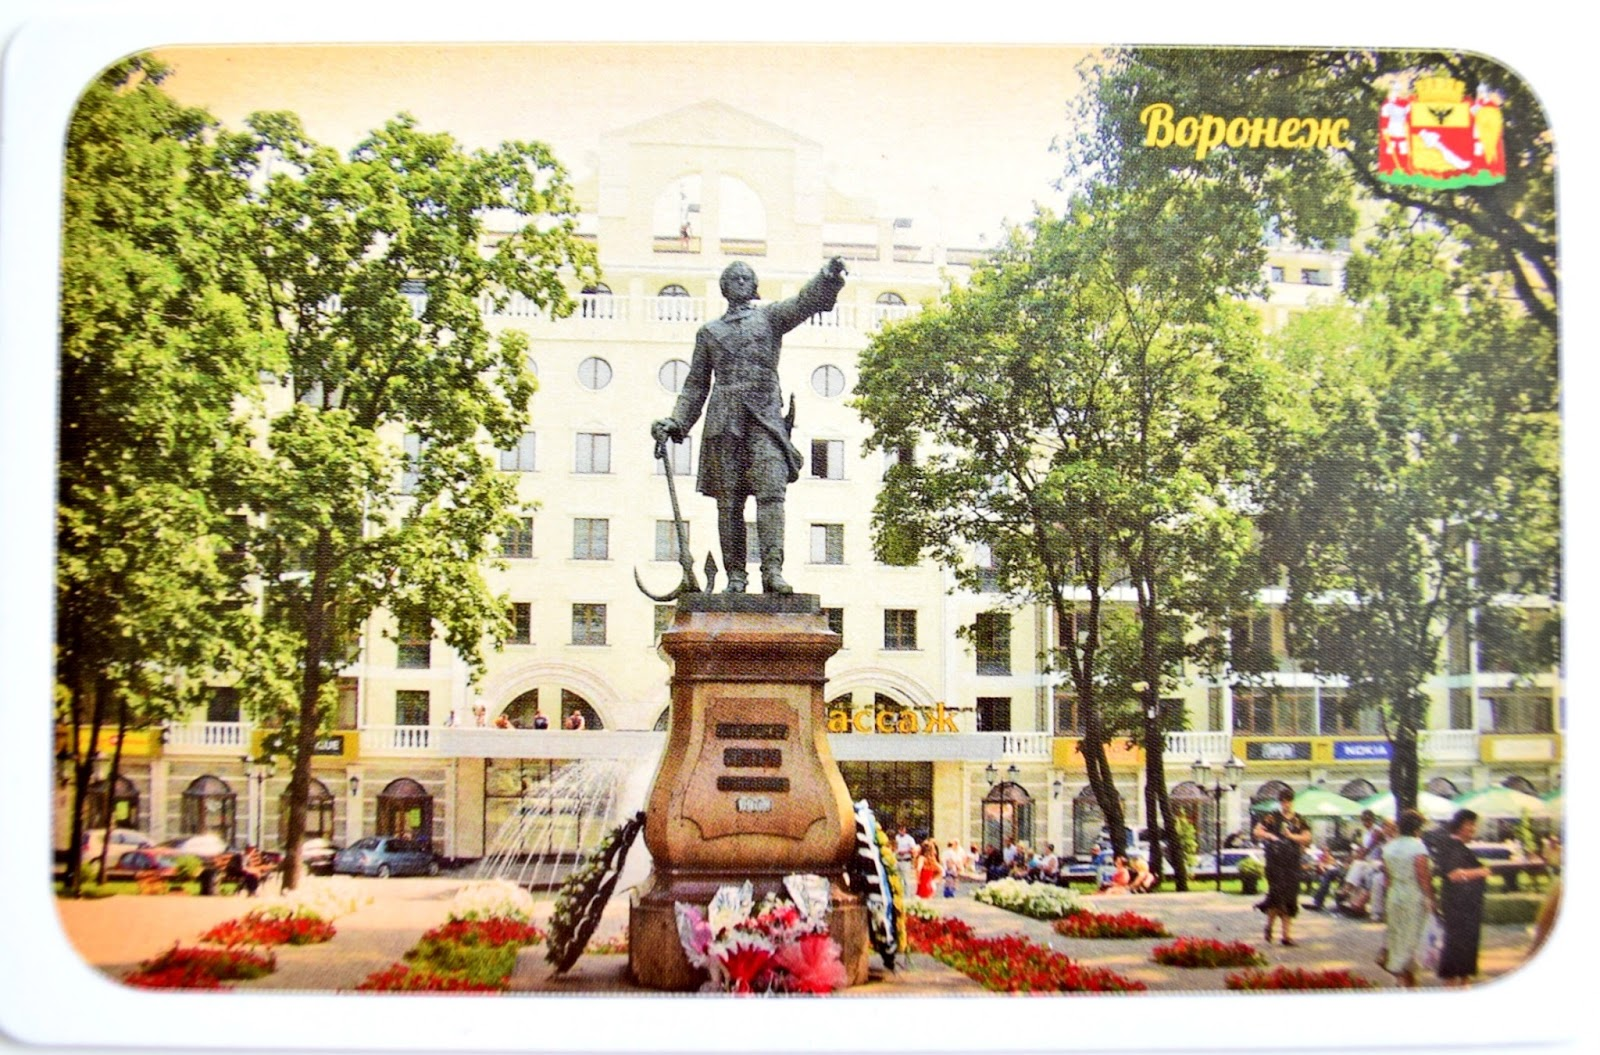 The monument to Peter the Great. Voronezh.